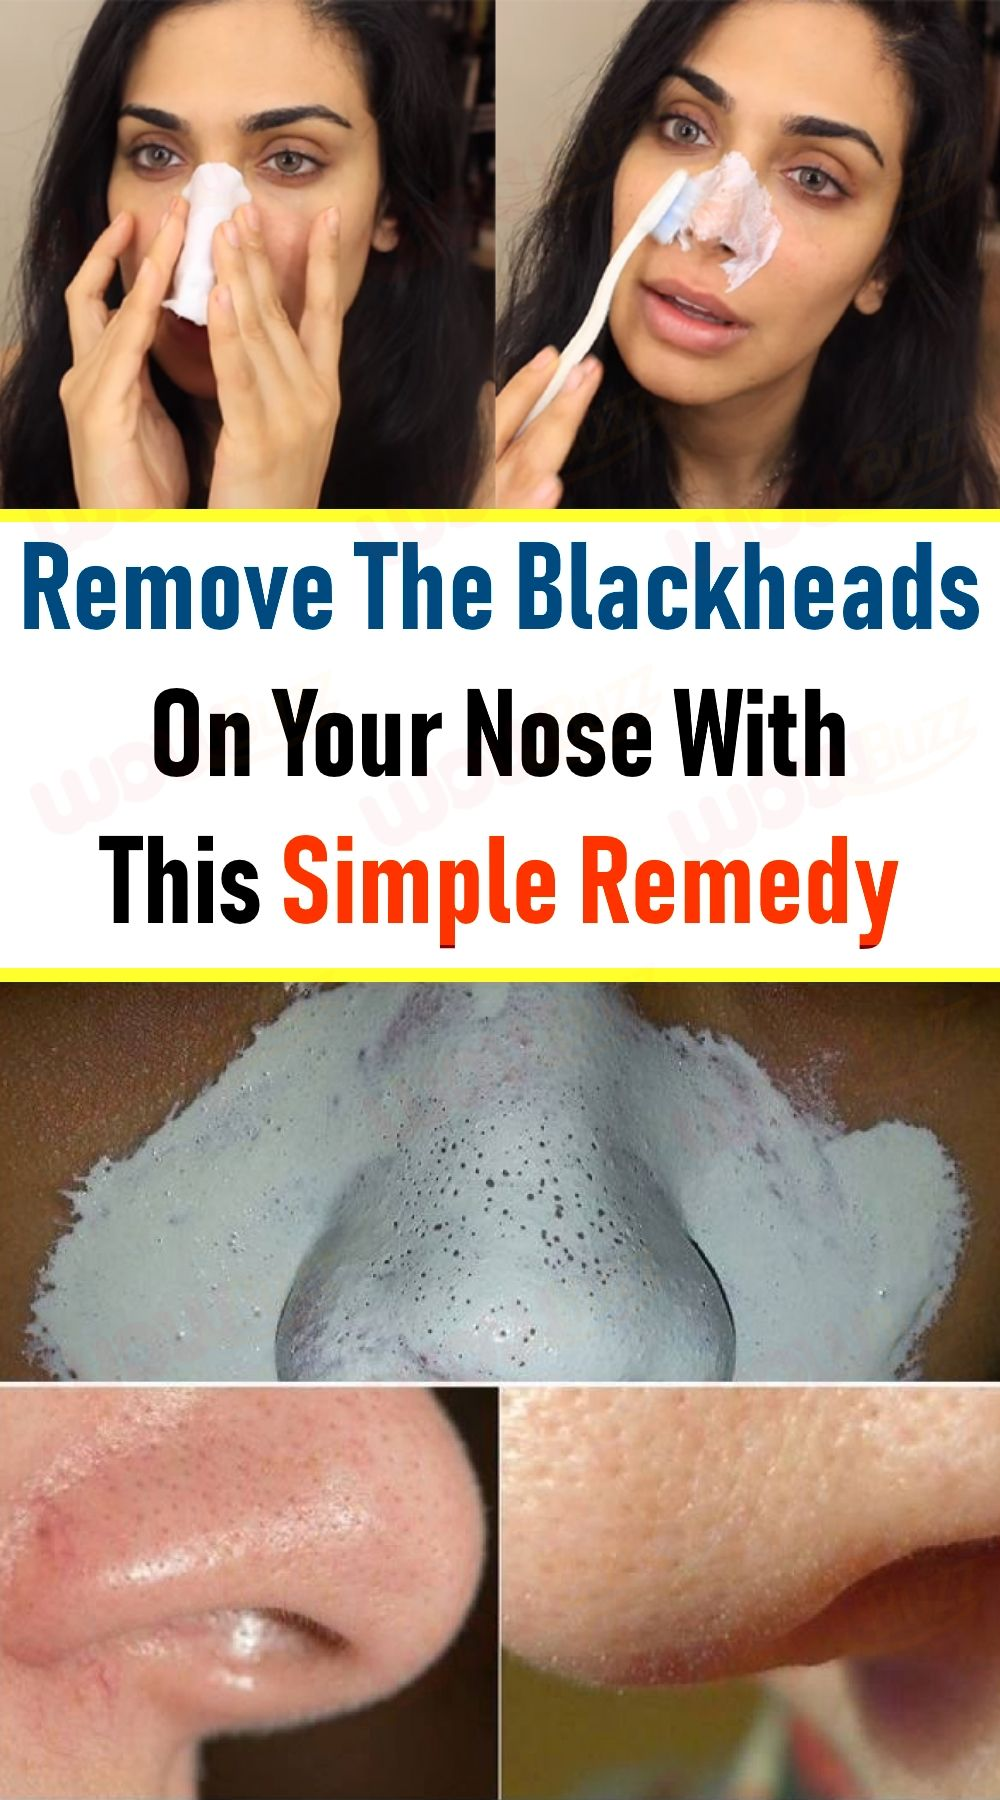 Pin on Acne remover